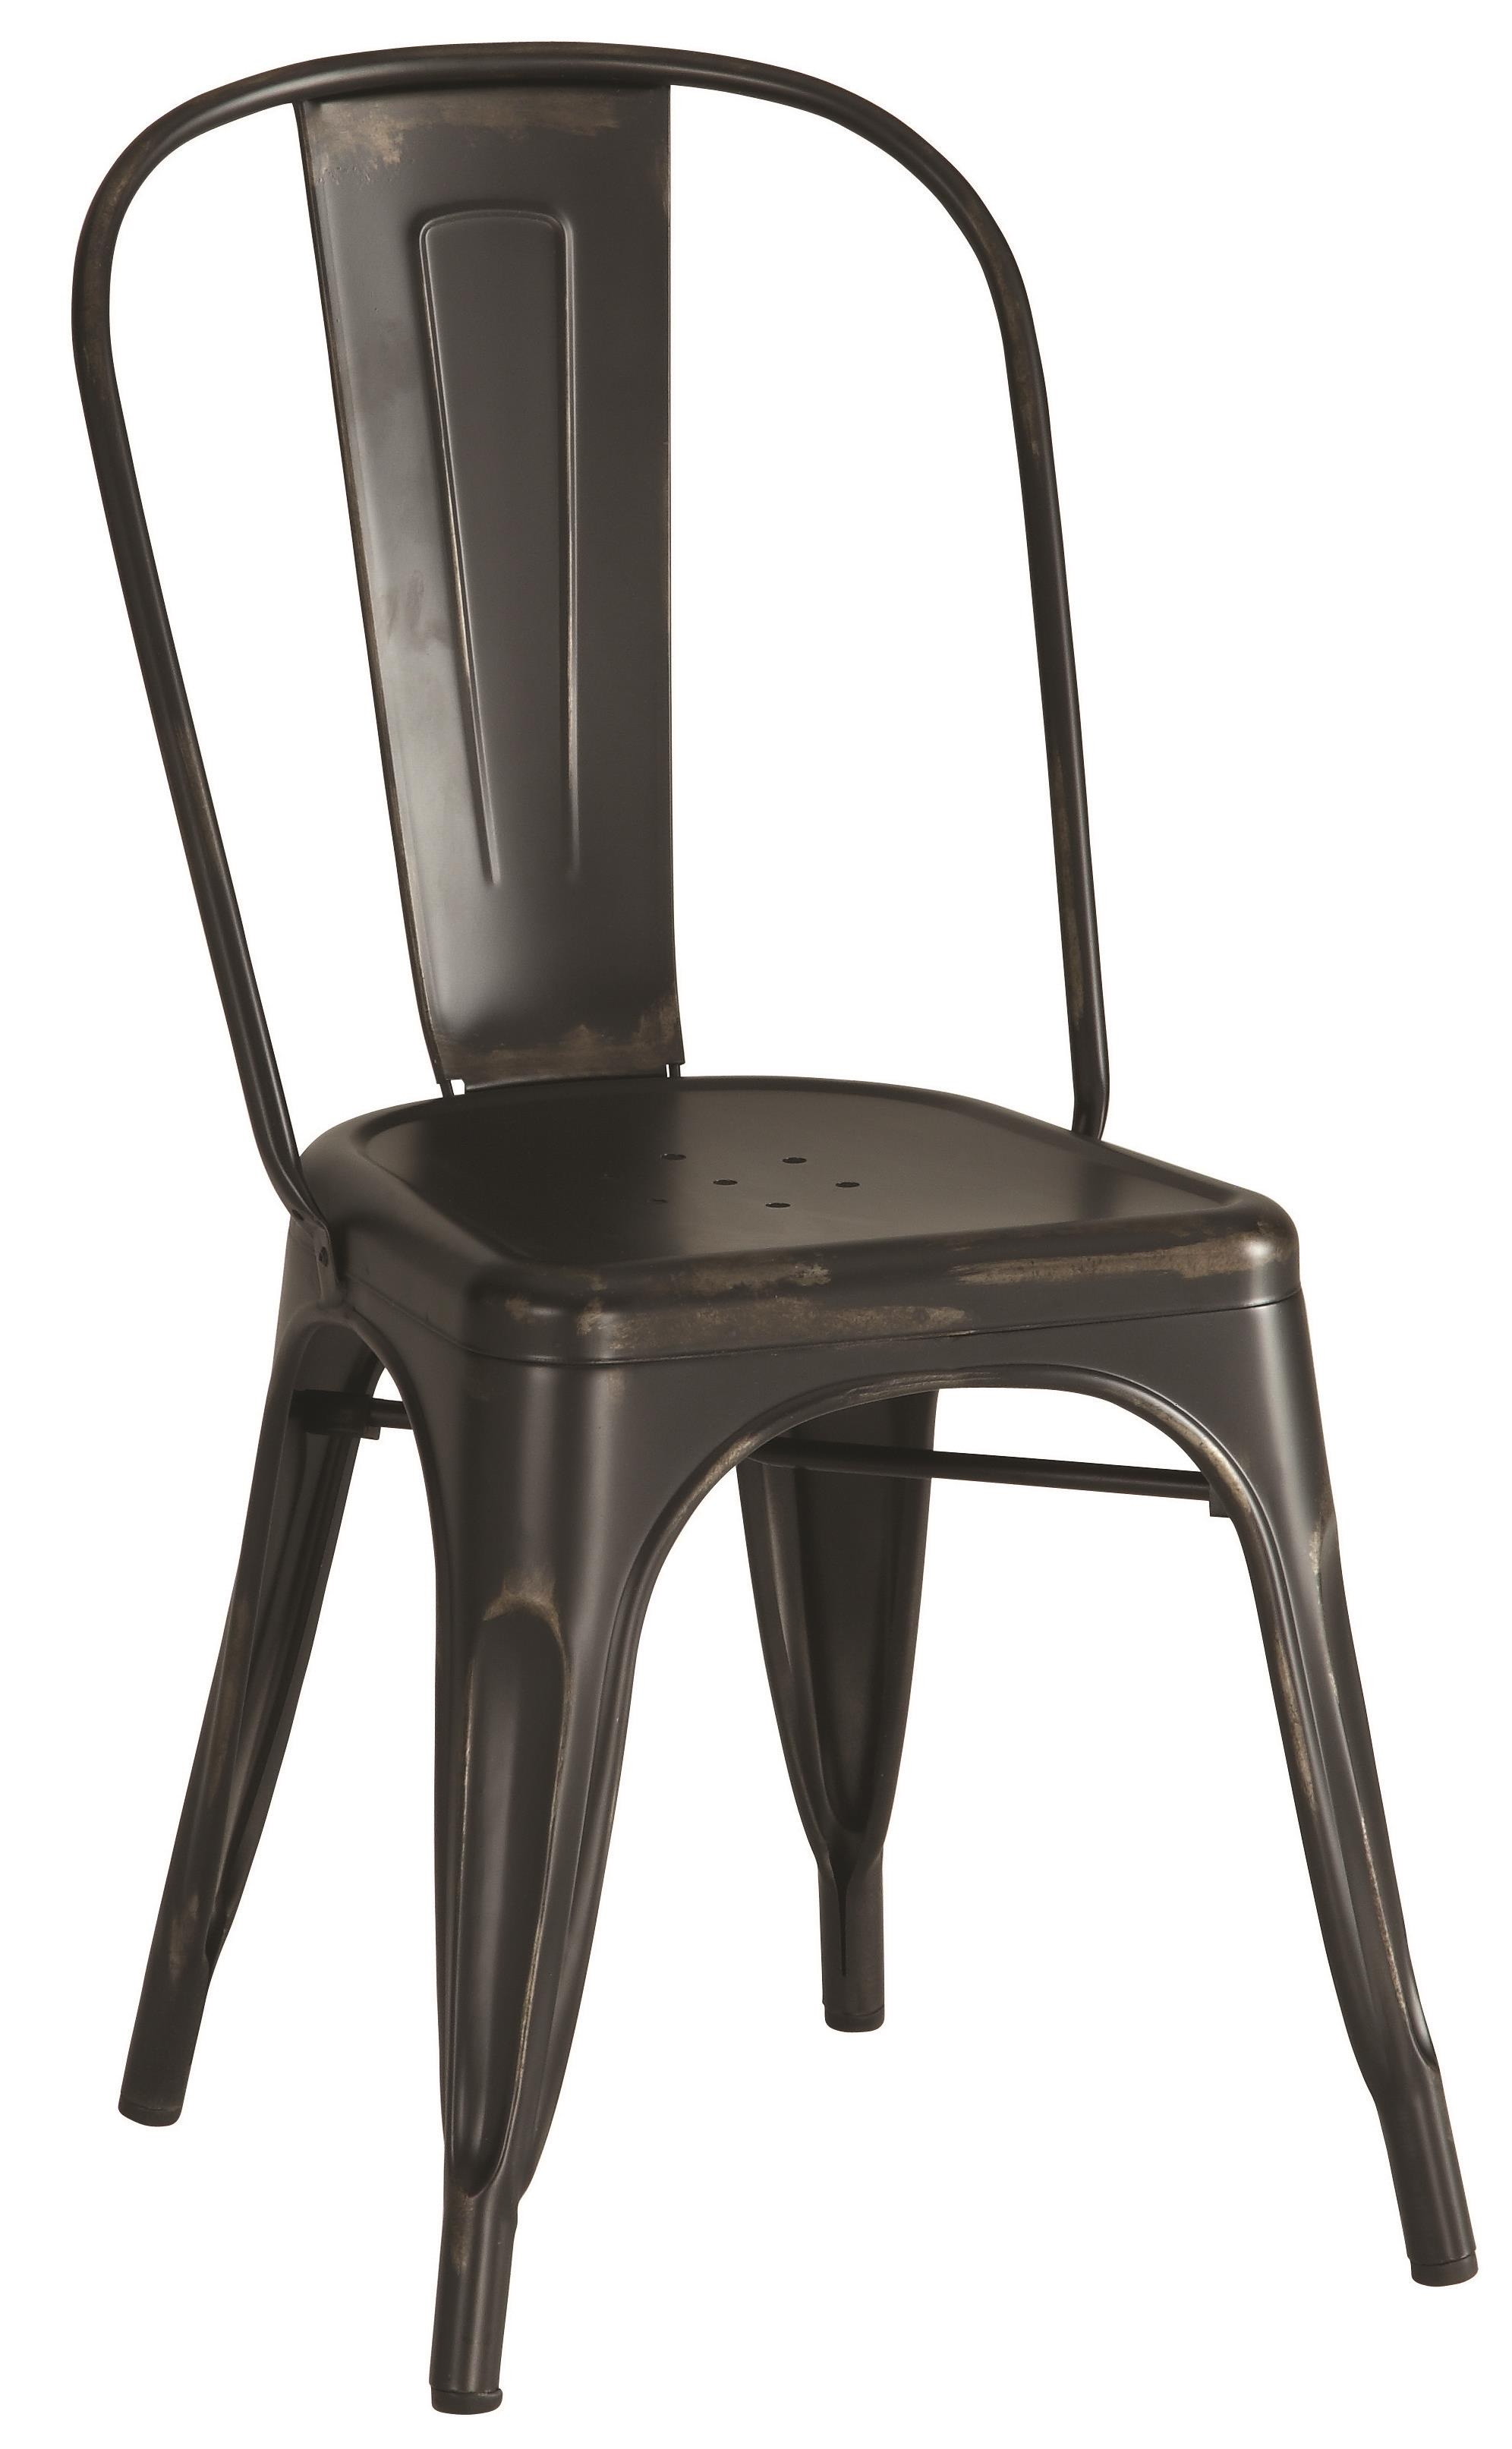 Coaster Dining Chairs and Bar Stools Metal Chair - Item Number: 105612